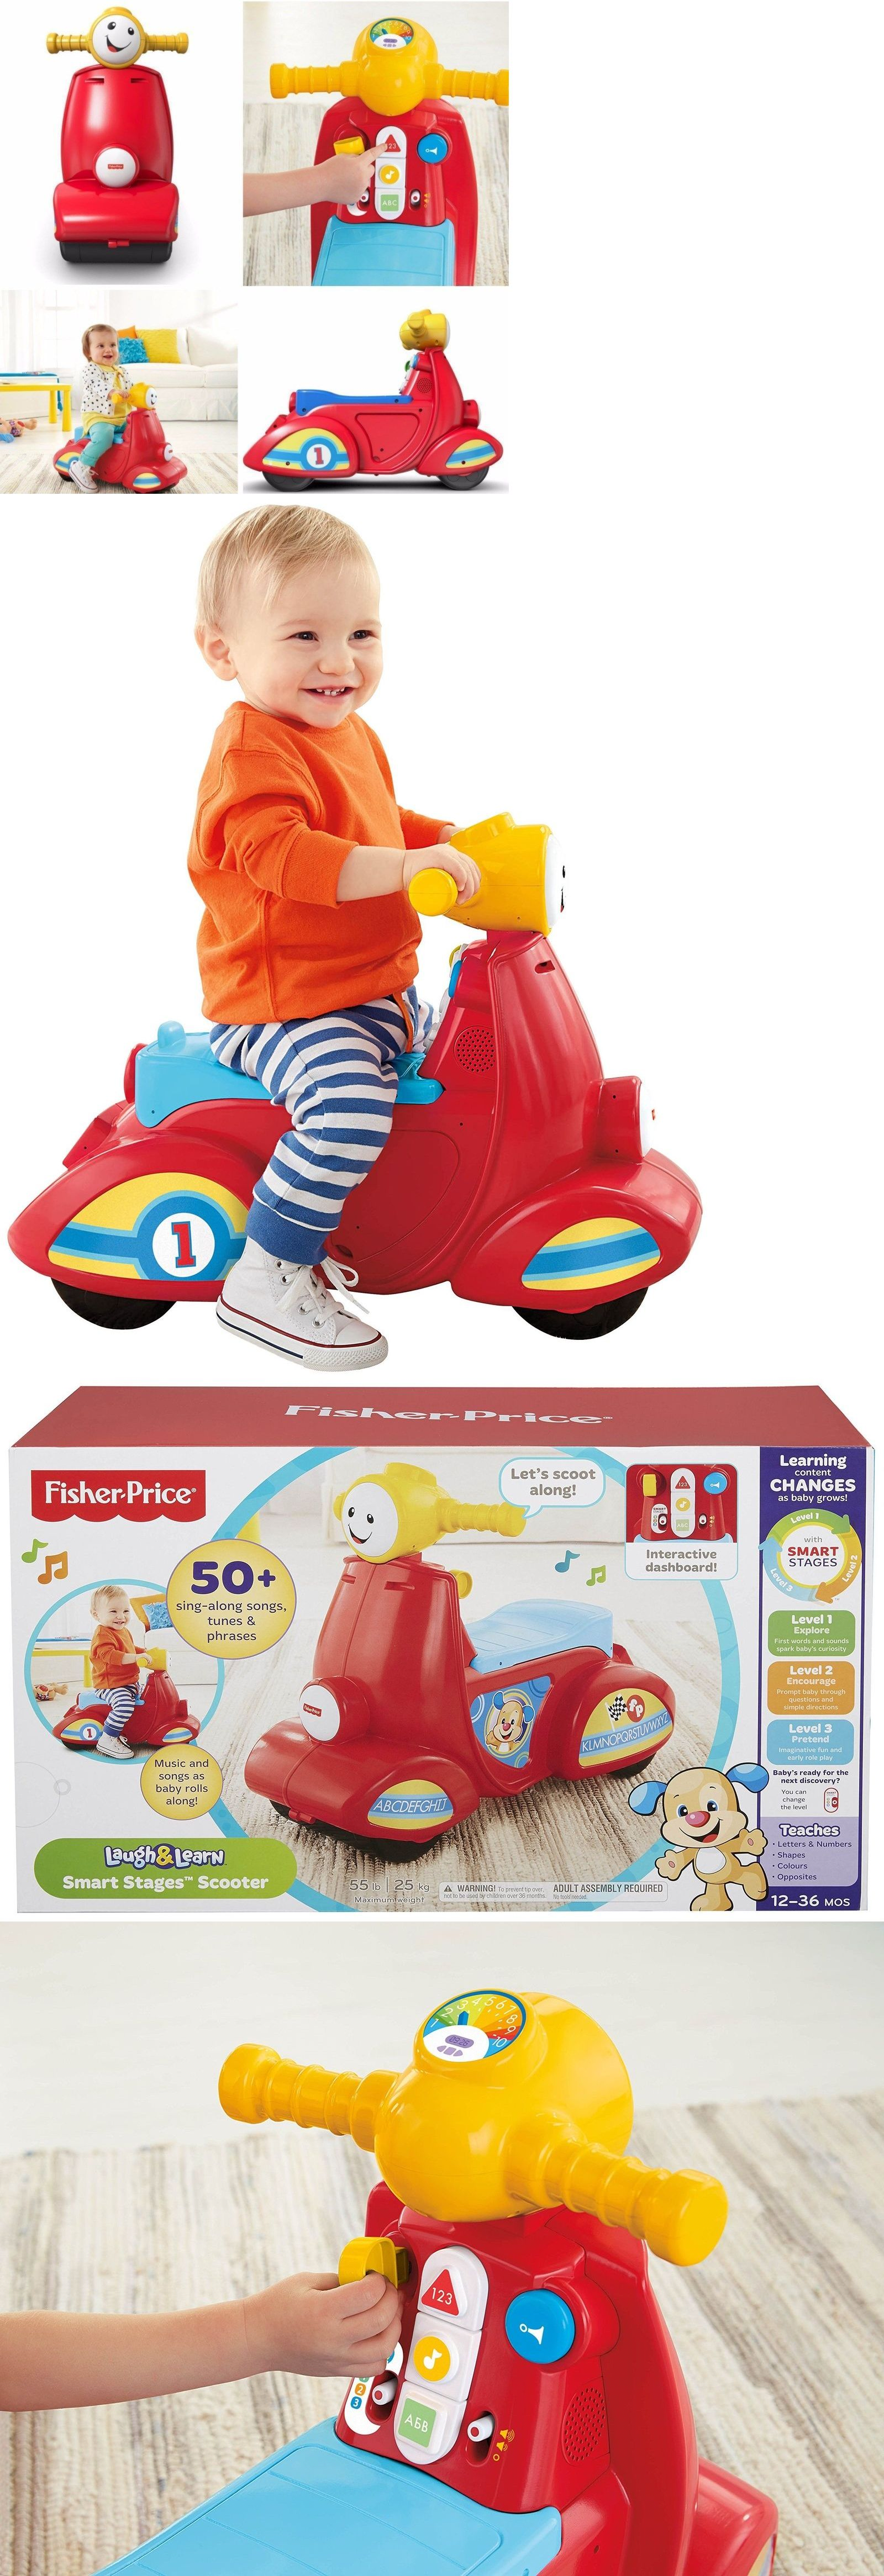 baby and kid stuff Scooters For Toddlers Educational Toys For 1 2